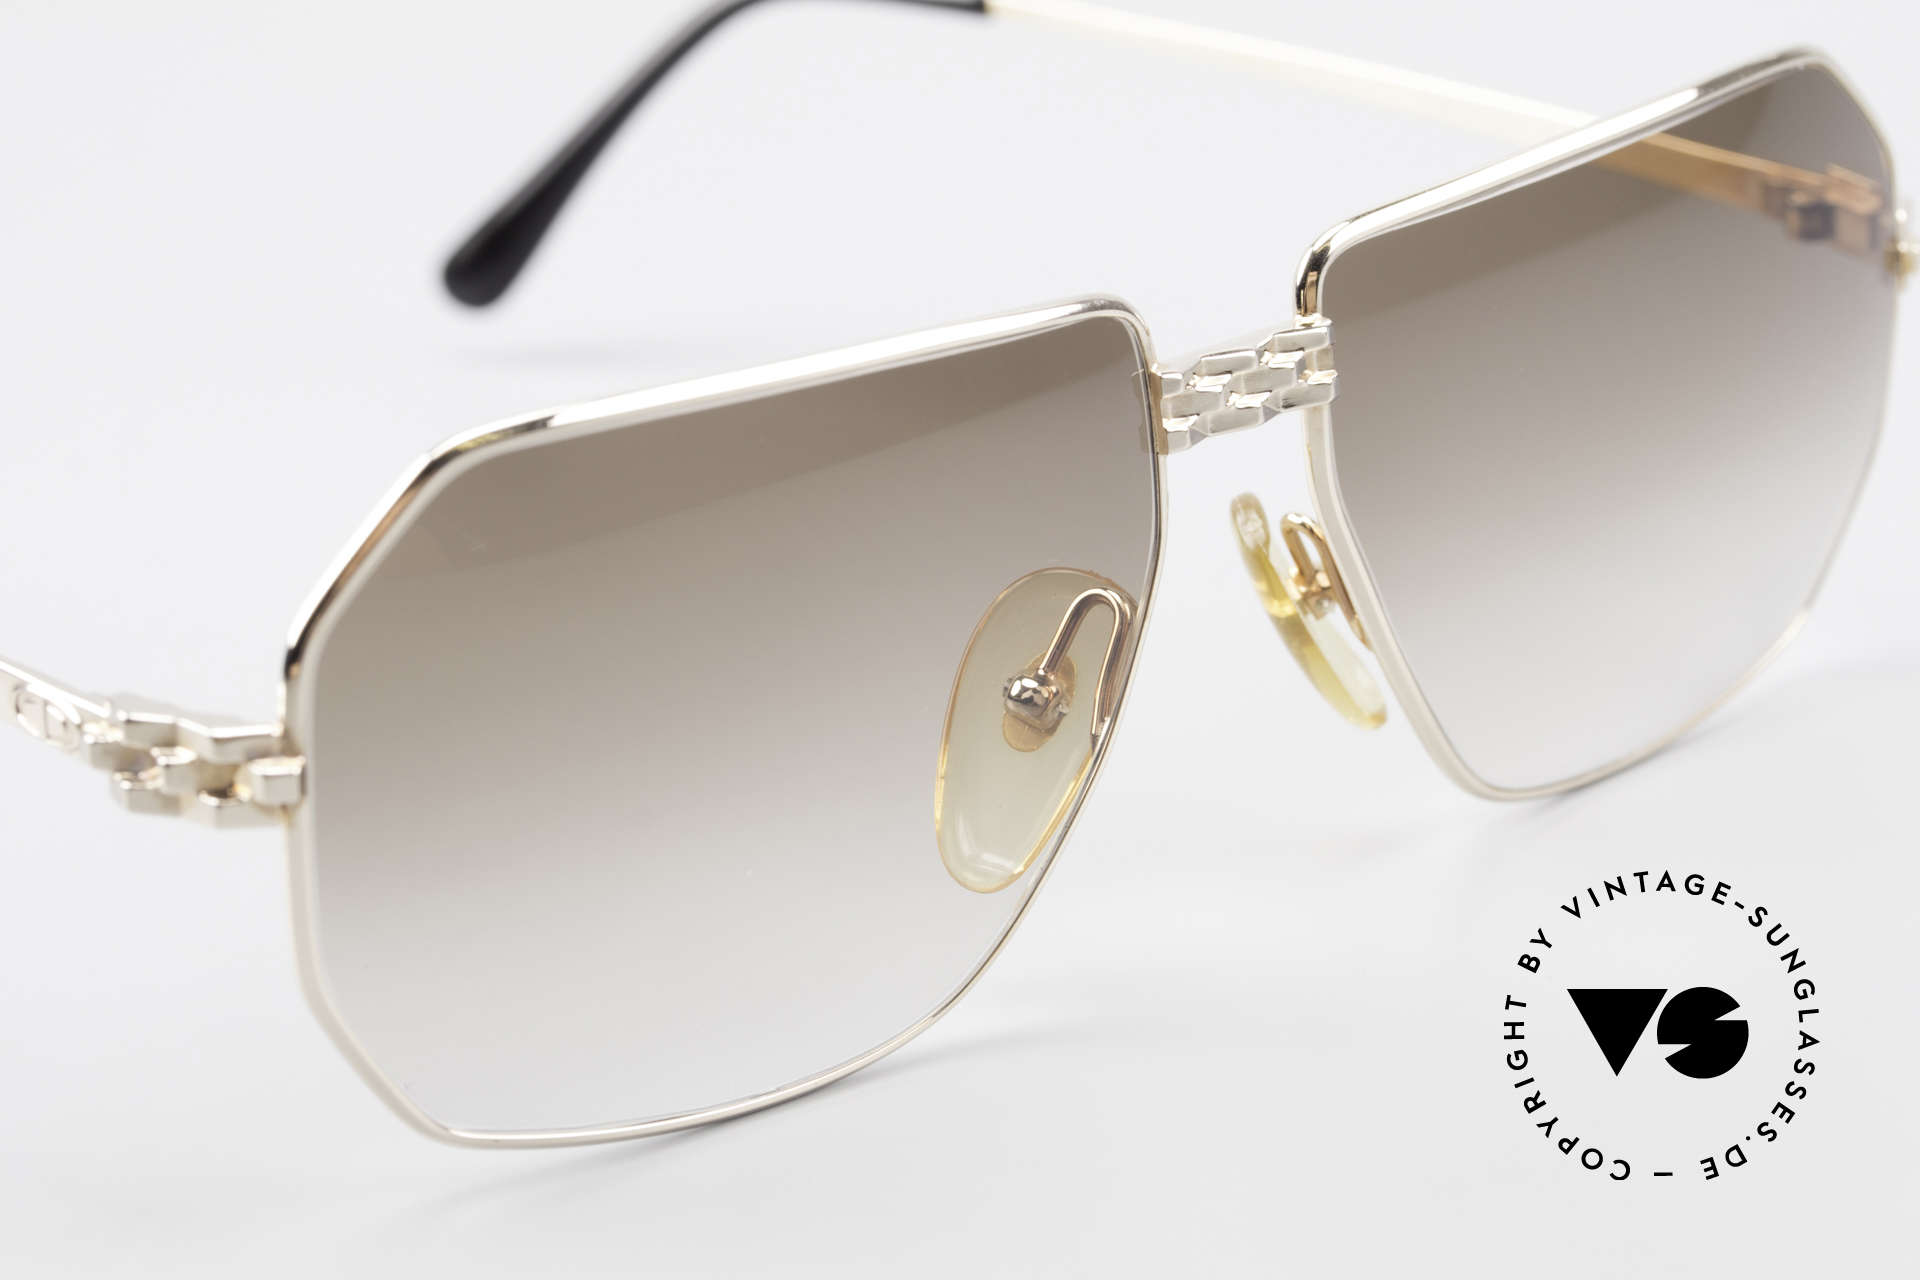 Christian Dior 2391 Old 80's Men's Glasses Vintage, 2nd hand, but in a mint condition (incl. Dior case), Made for Men